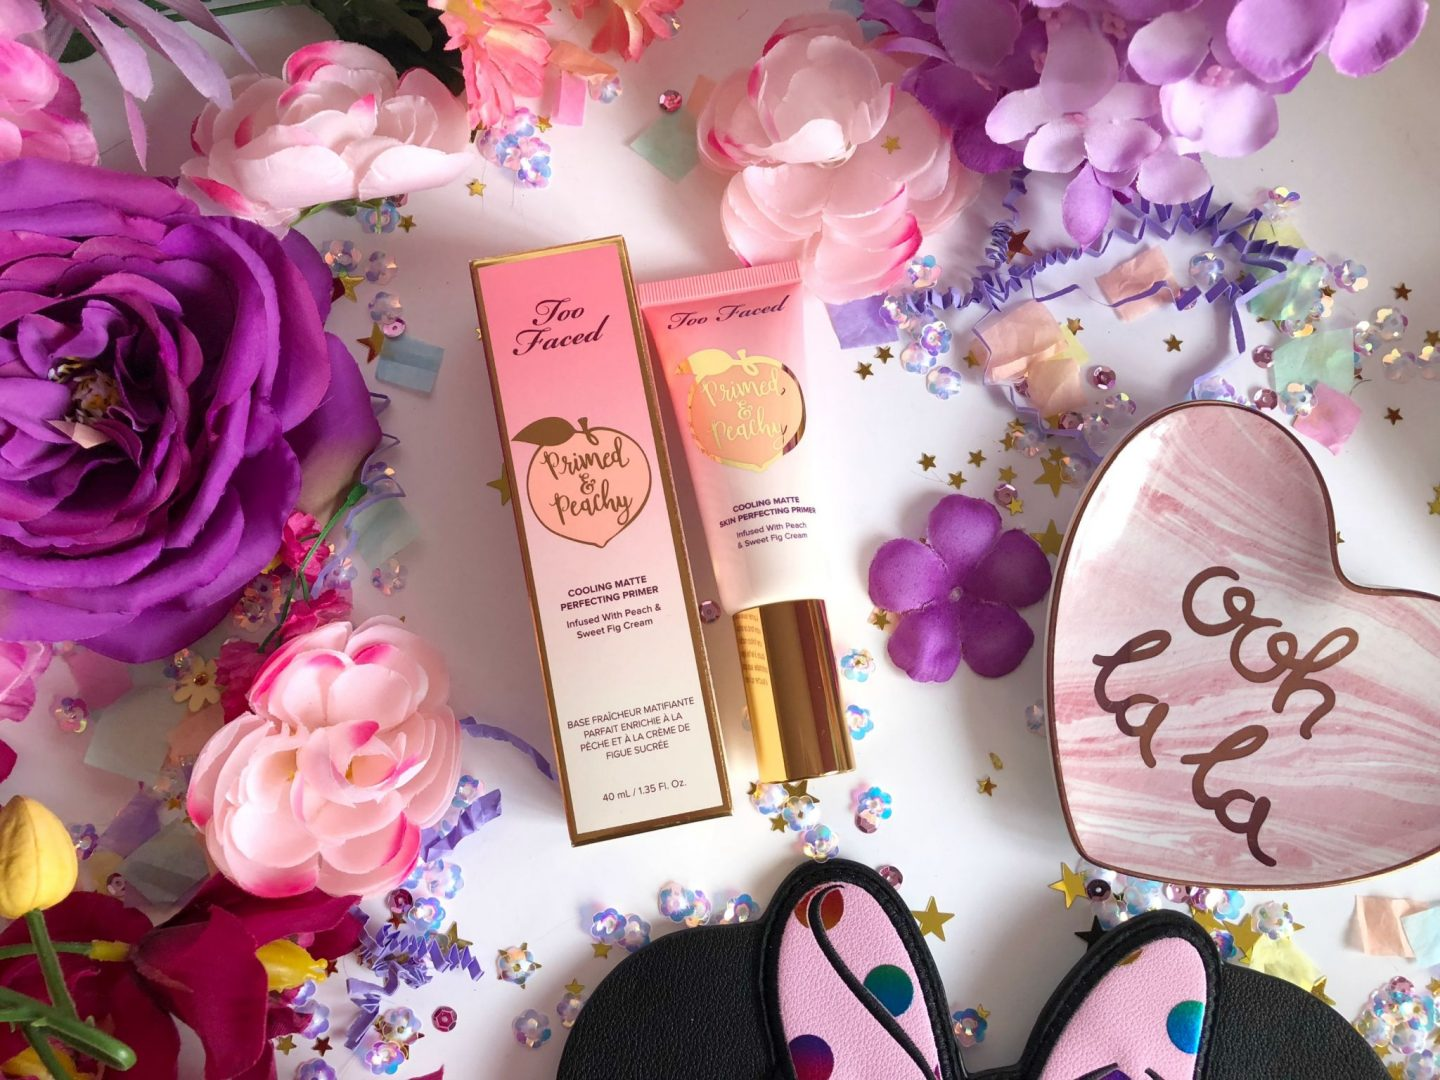 Too Faced Primed & Peachy Primer Review